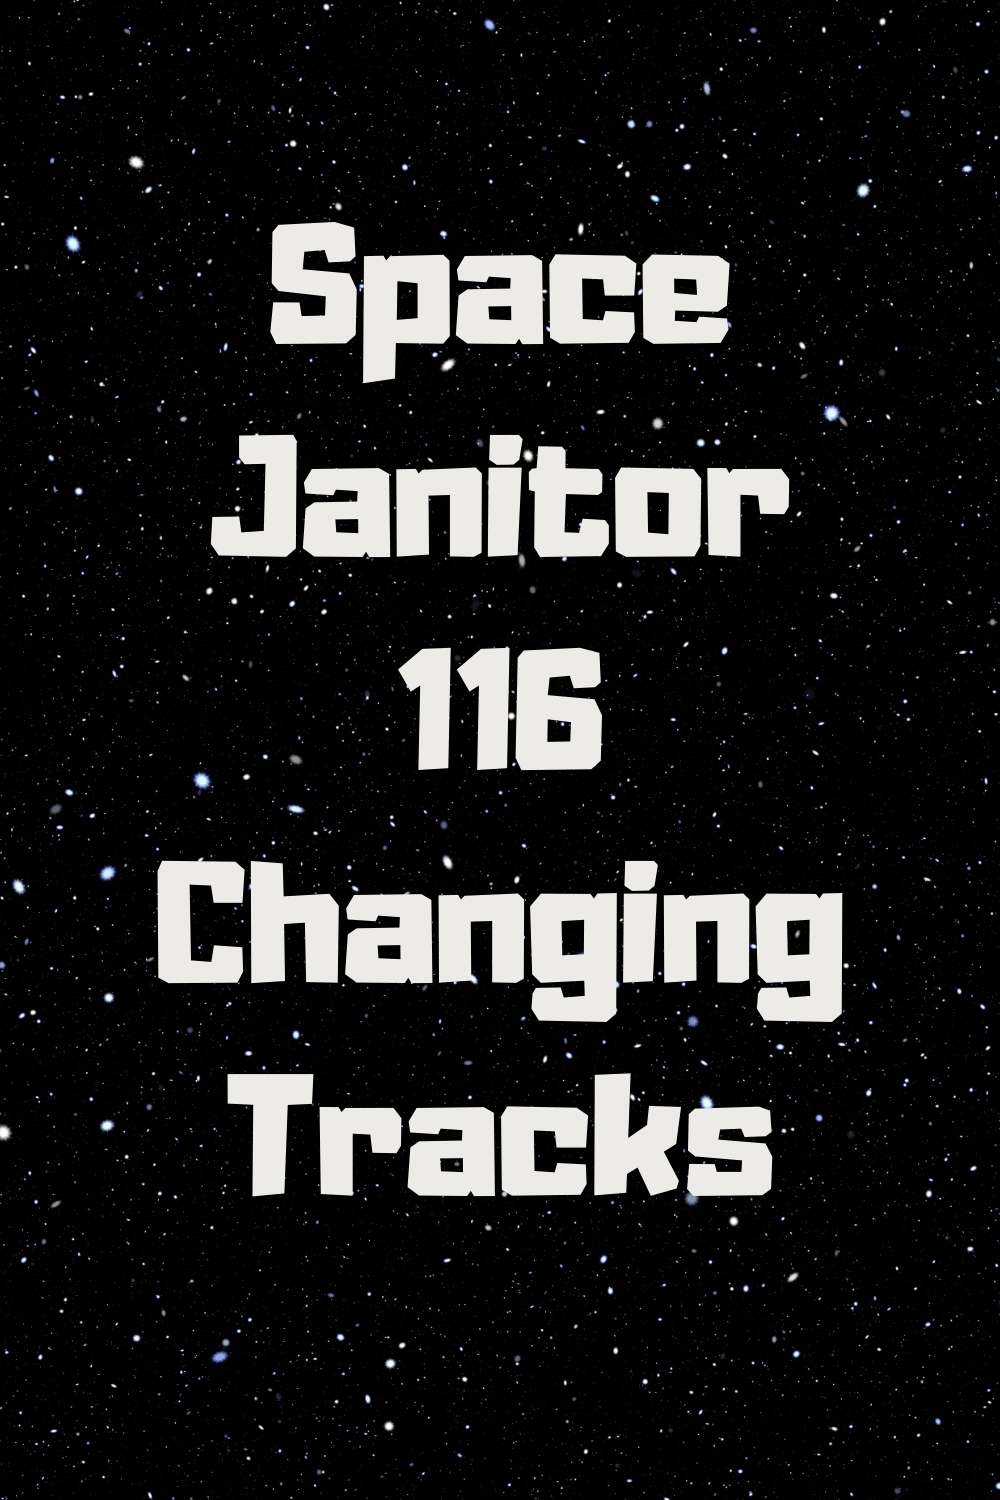 Space Janitor 116